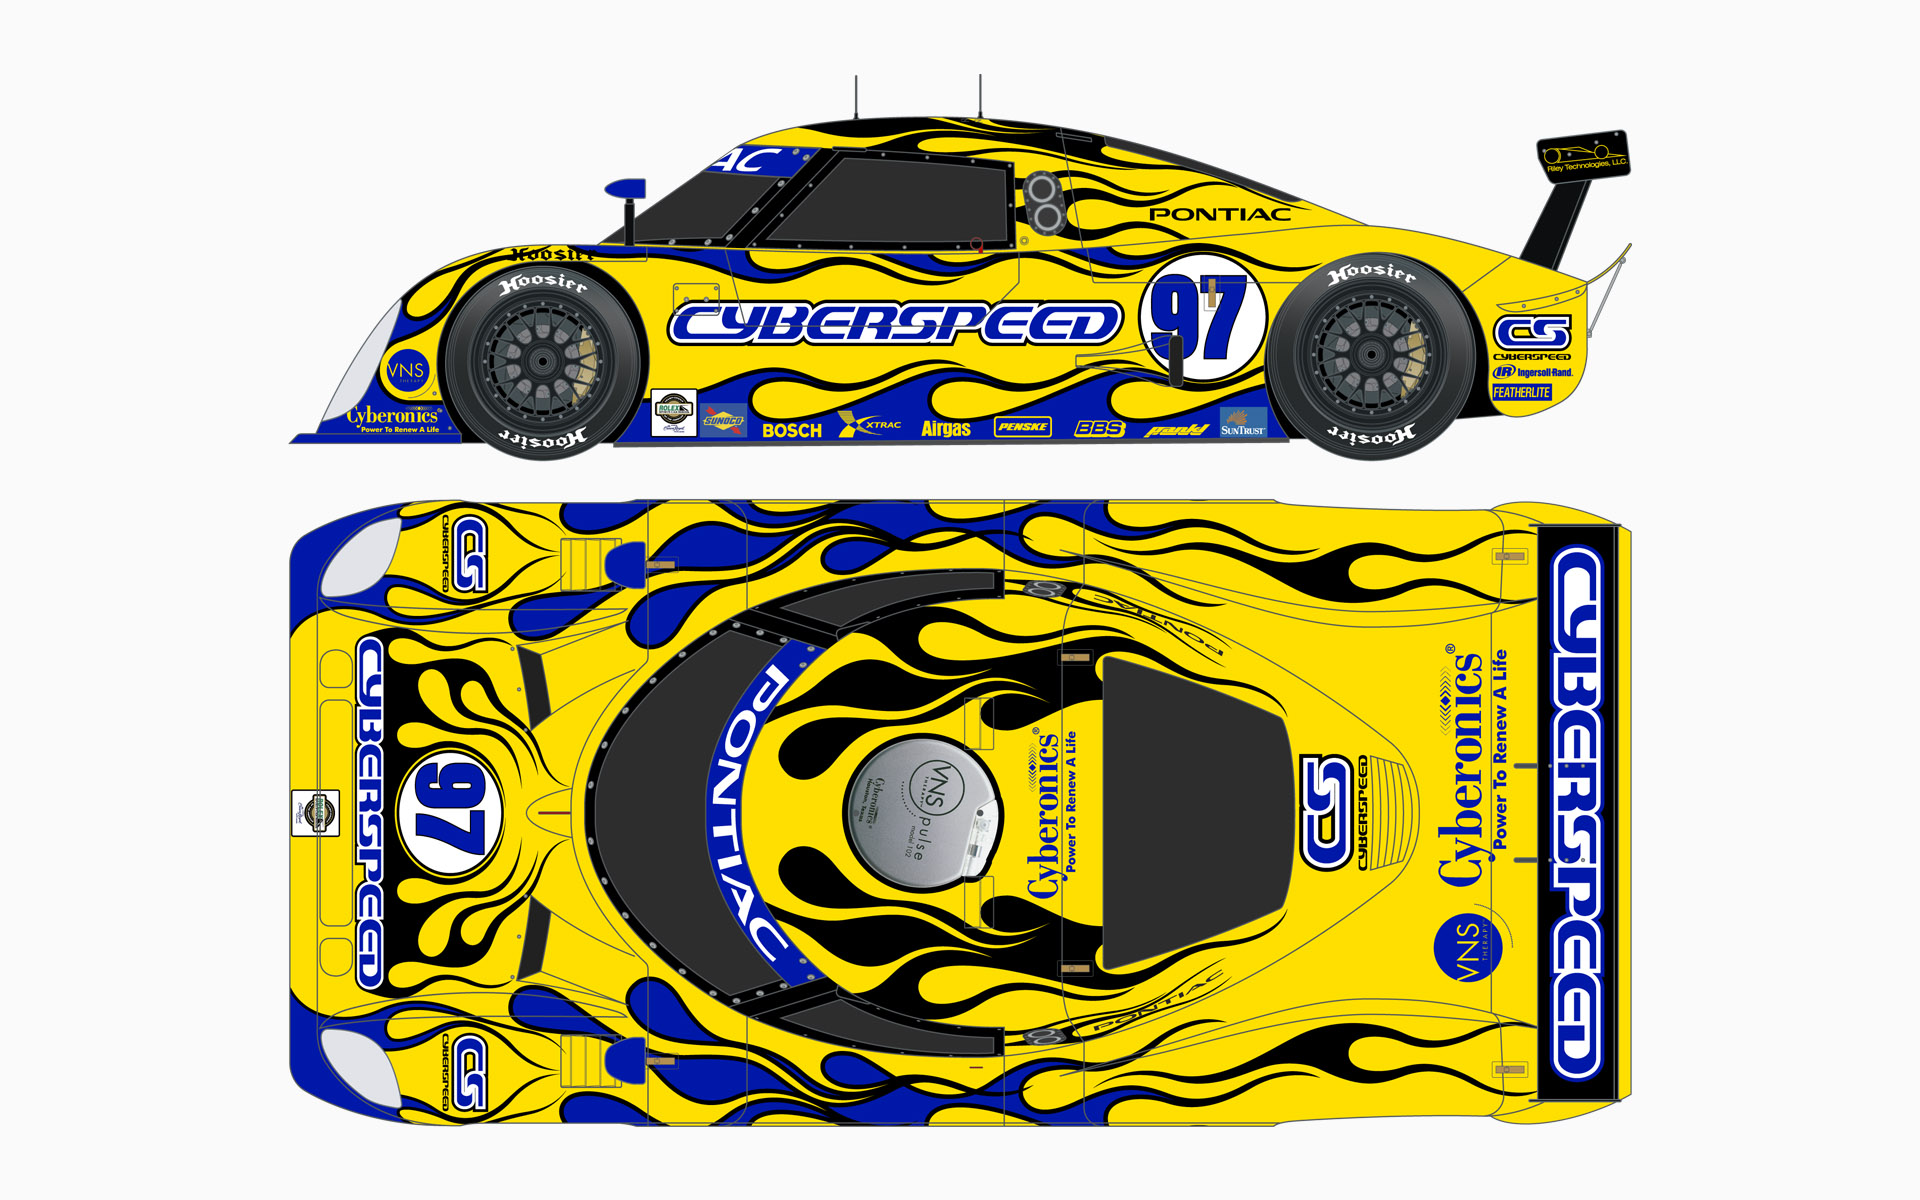 Cyberspeed Racing Riley MKXI Daytona Prototype Livery Elevations